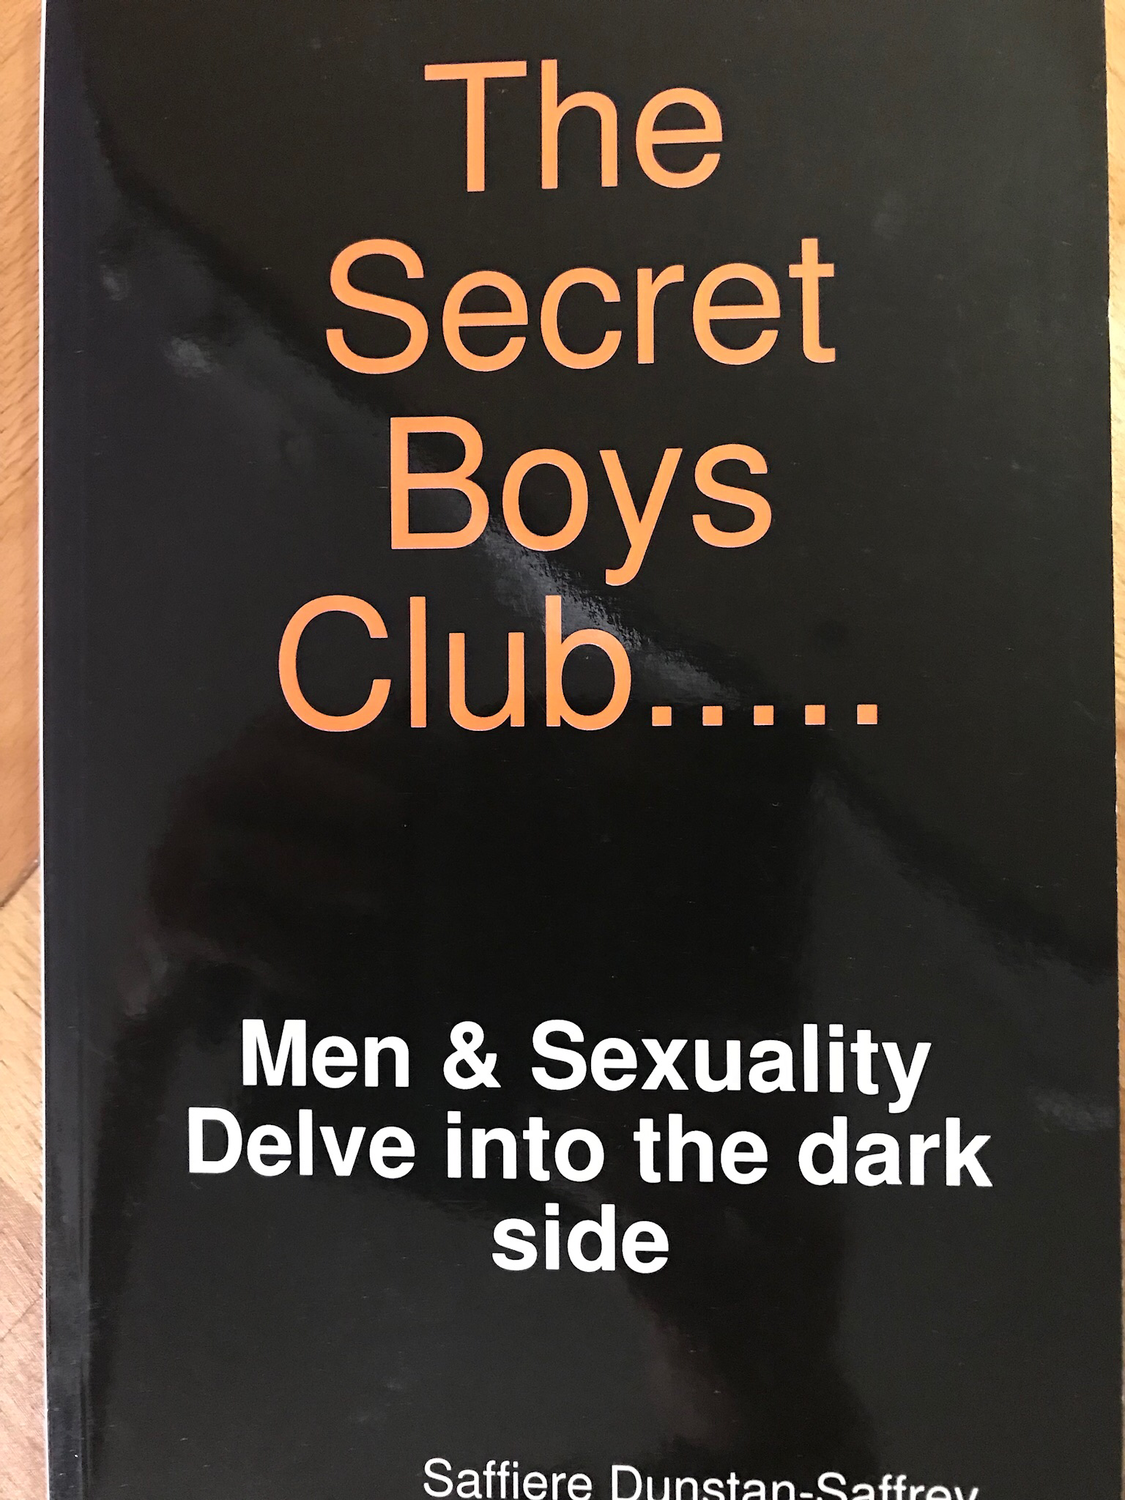 The Secret Boys Club (Book)